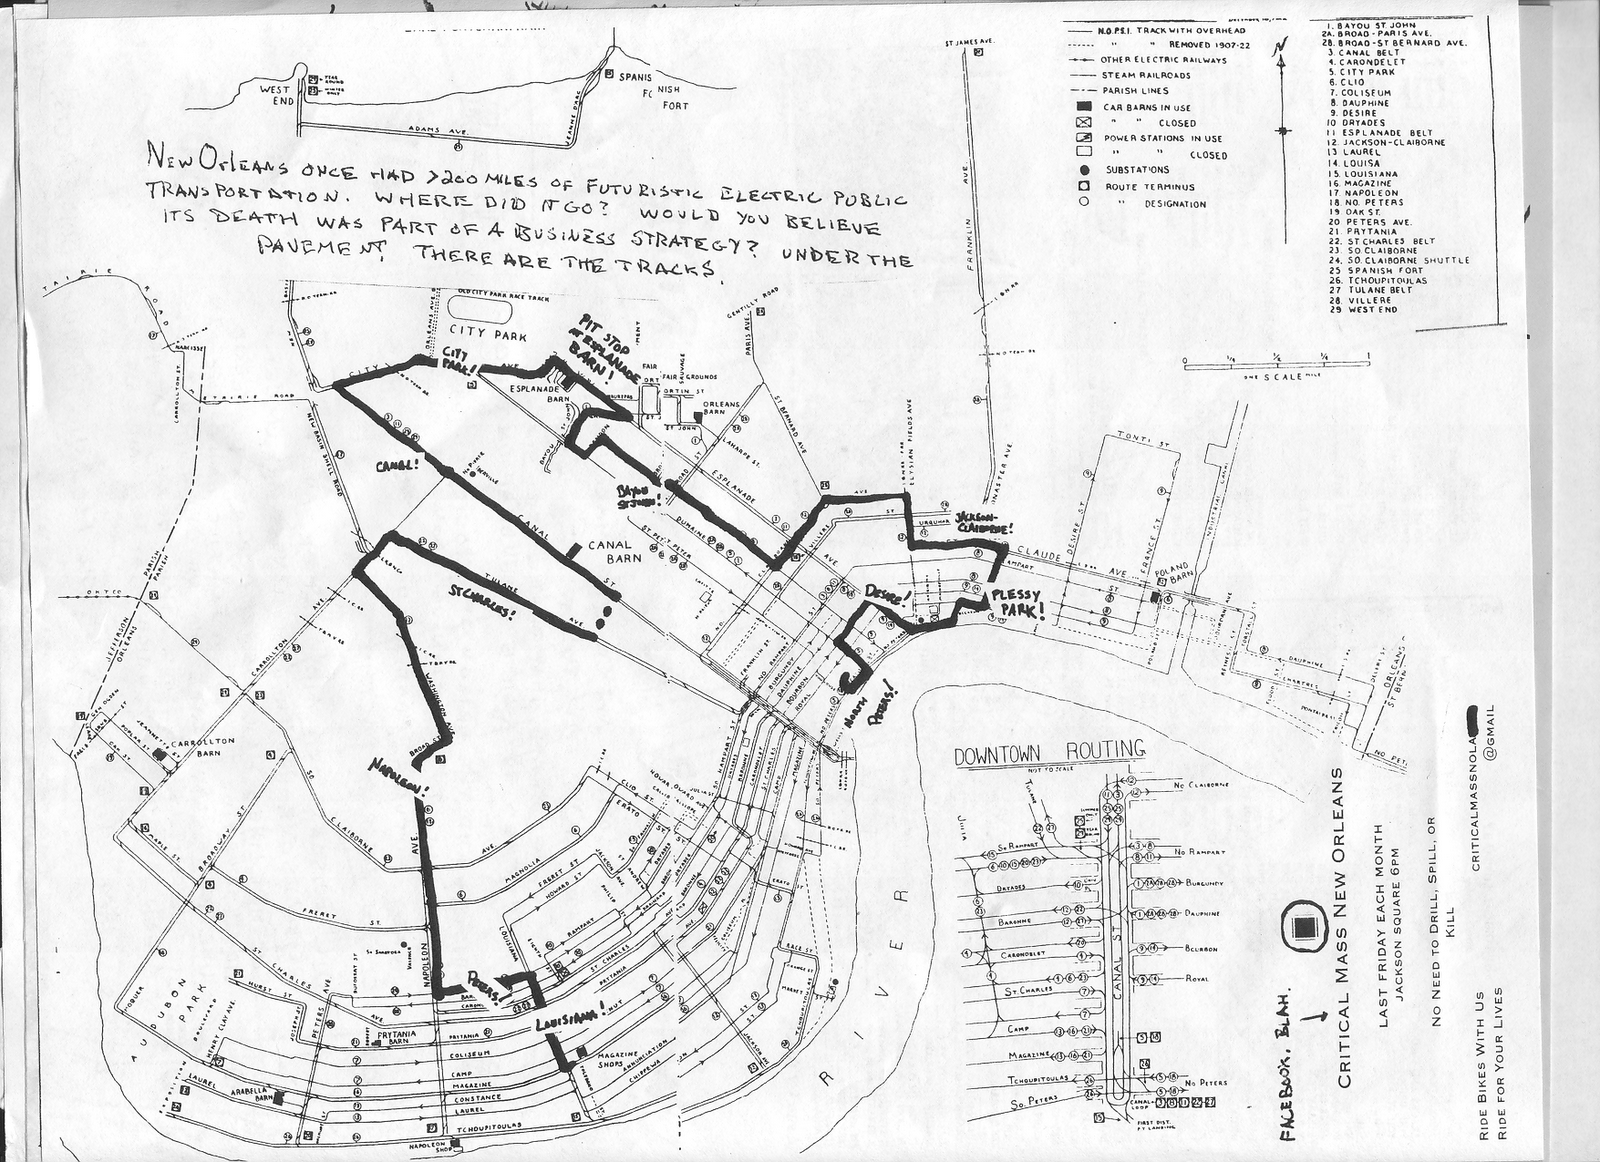 Streetcars In New Orleans Map.Nolacycle Bike Map Project Thanks For The Streetcar Ride